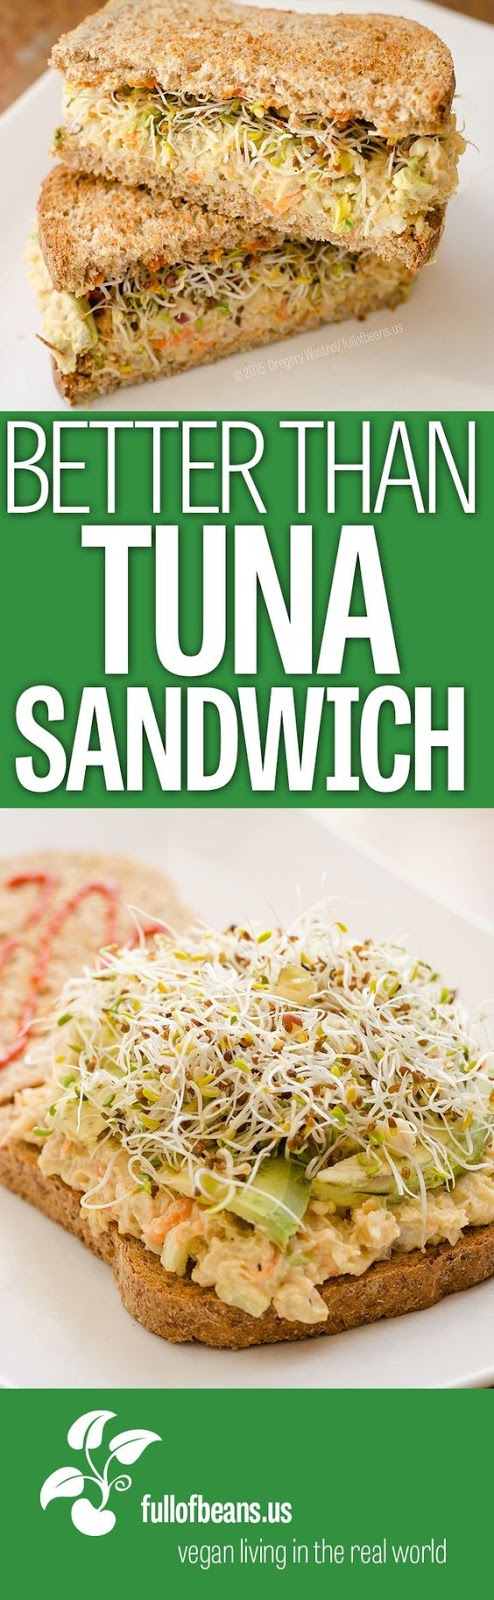 Portable and easy meals, like the classic tuna salad sandwich, are an essential. This chickpea vegan tuna salad is a delicious vegan alternative. Try it!